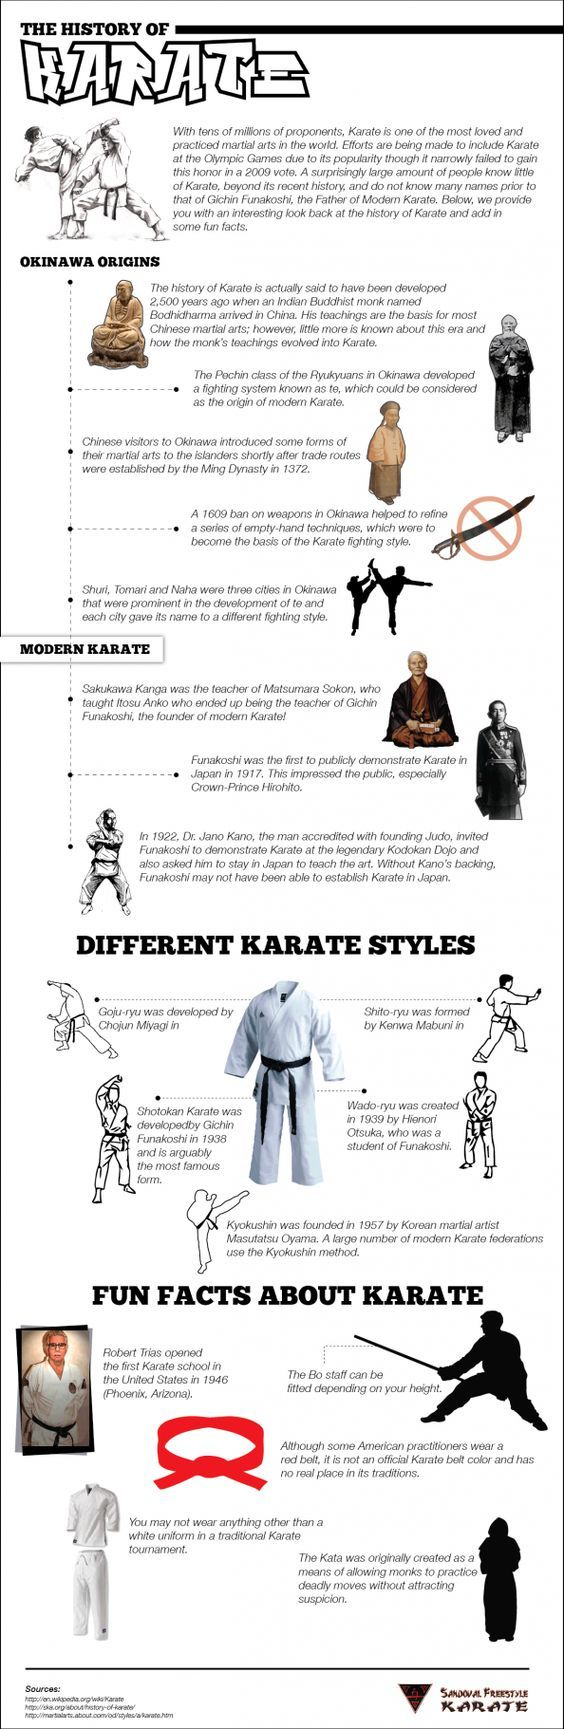 Infographic Showing the History of Karate Karate Panda Martial Arts Store. We have picked out the best Martial Arts gear you will need to help you grow as a Martial Artist. We have Martial Arts uniforms or Gi's, Martial Arts books, Martial Arts videos, Martial Arts weapons, Martial Arts apparel, Martial Arts equipment.Every Martial Arts …